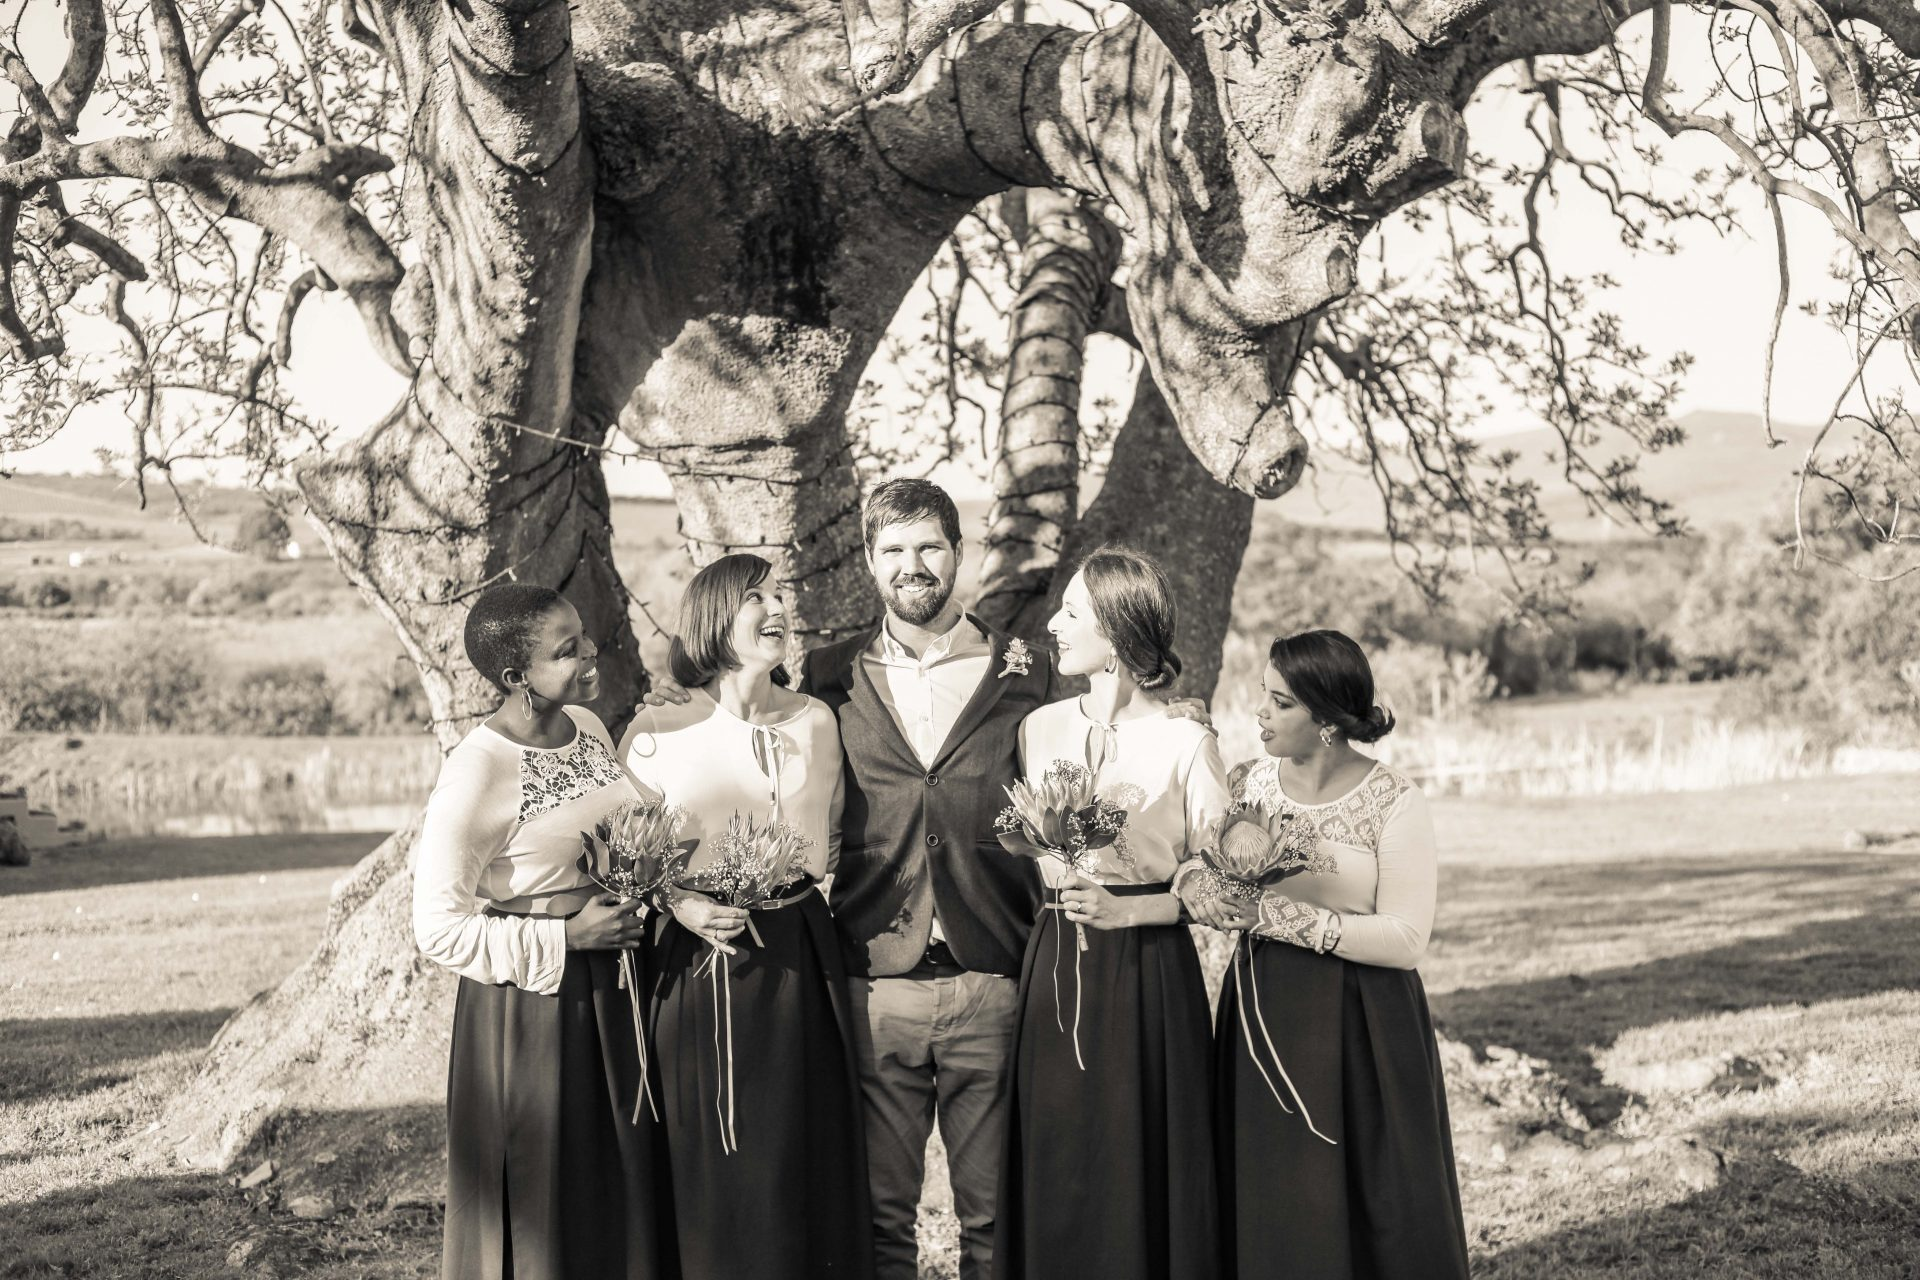 lorien-david_elana-van-zyl-overberg-swellendam-photographer-de-uijlenes-wedding-8211